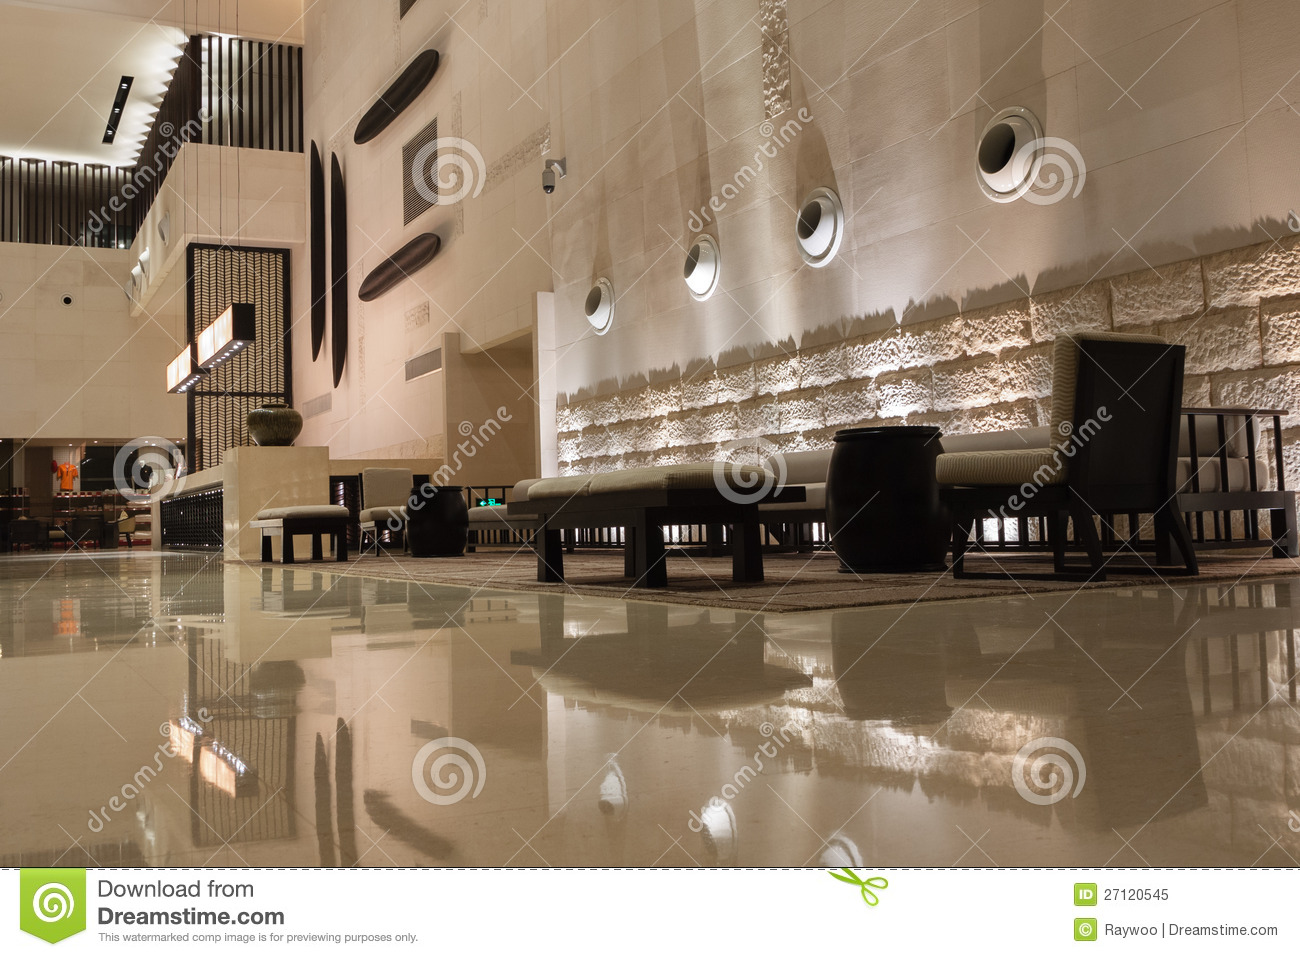 modern hotel interior royalty free stock photo - image: 27120545